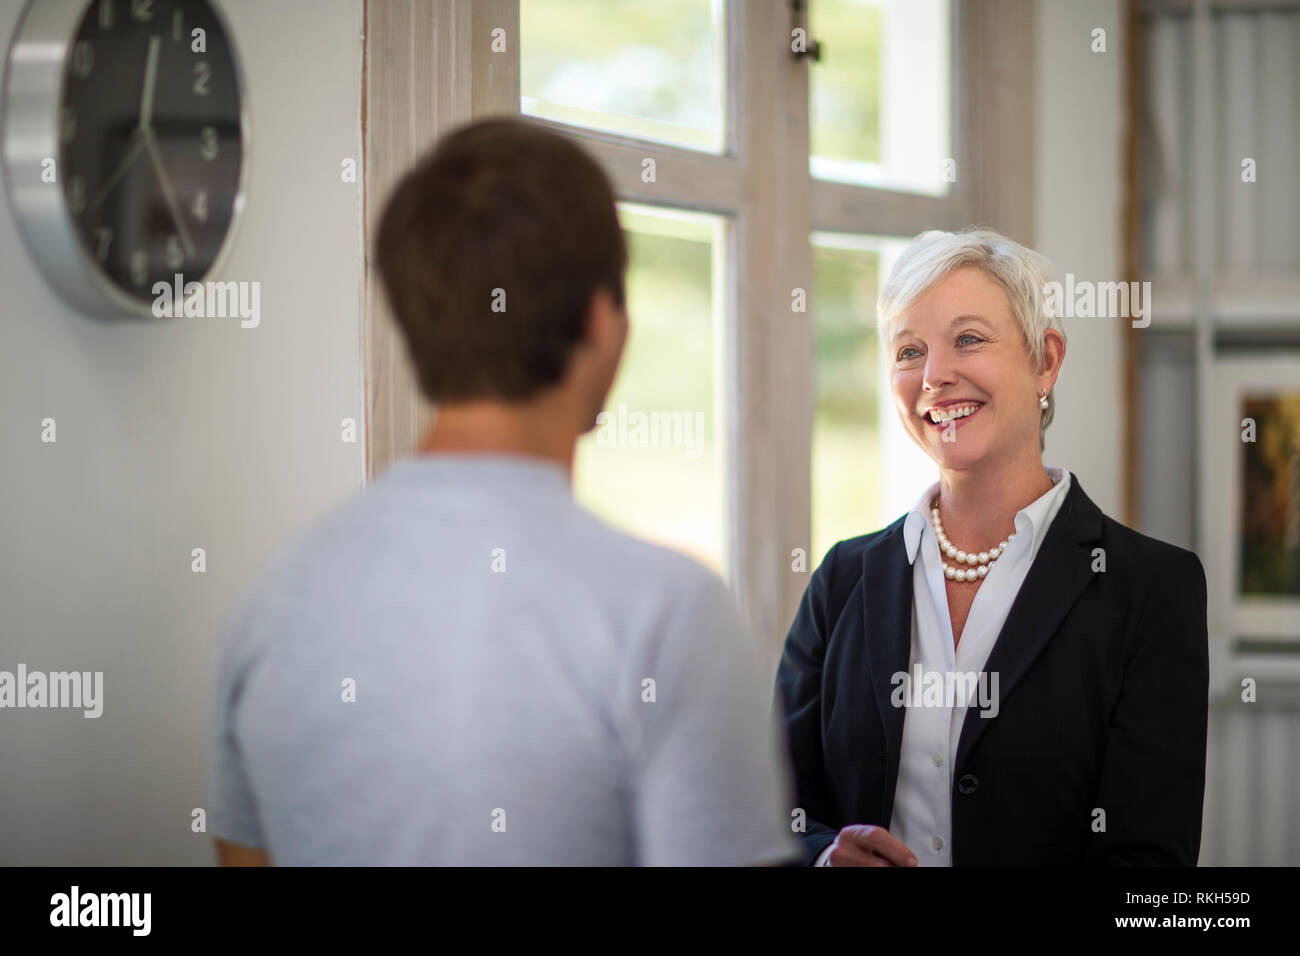 Smiling mature businesswoman chats to a young colleague. - Stock Image